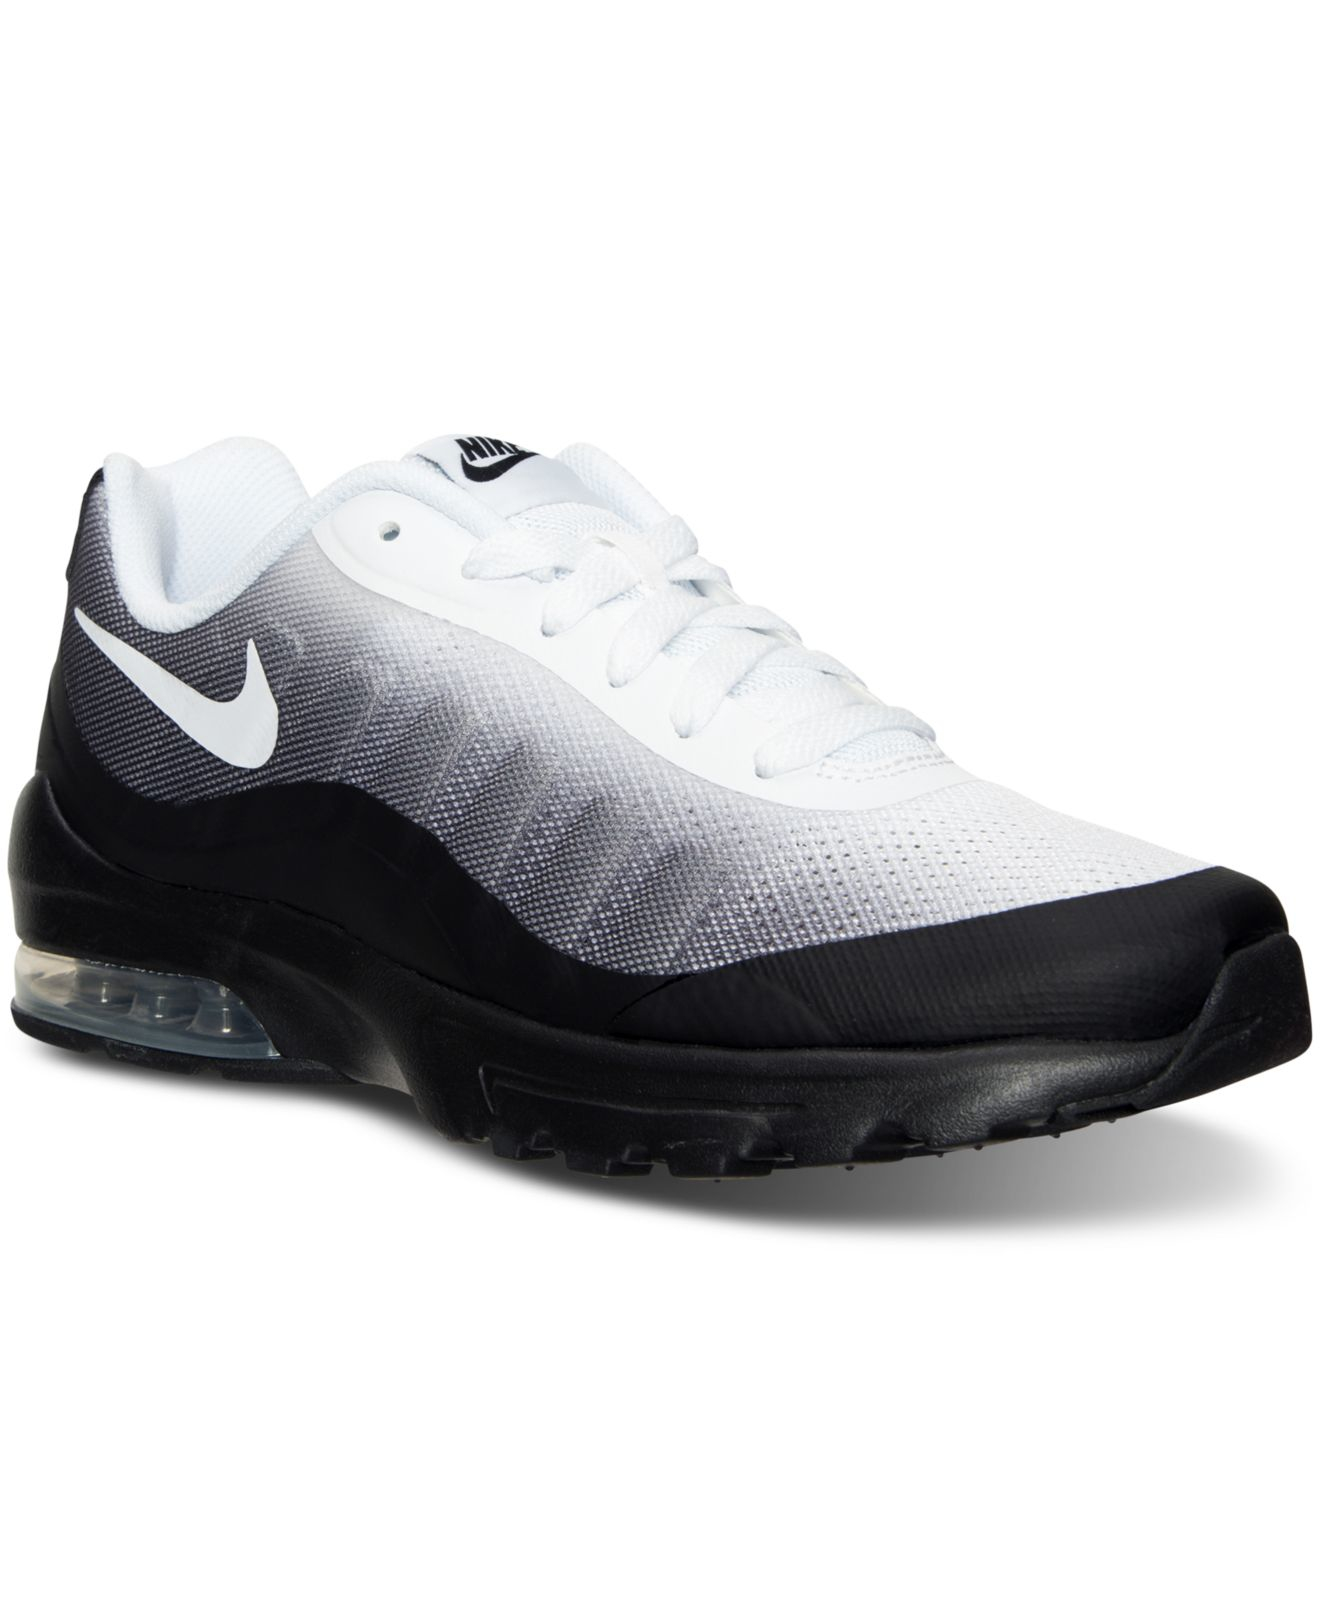 nike men 39 s air max invigor print running sneakers from finish line in black for men lyst. Black Bedroom Furniture Sets. Home Design Ideas